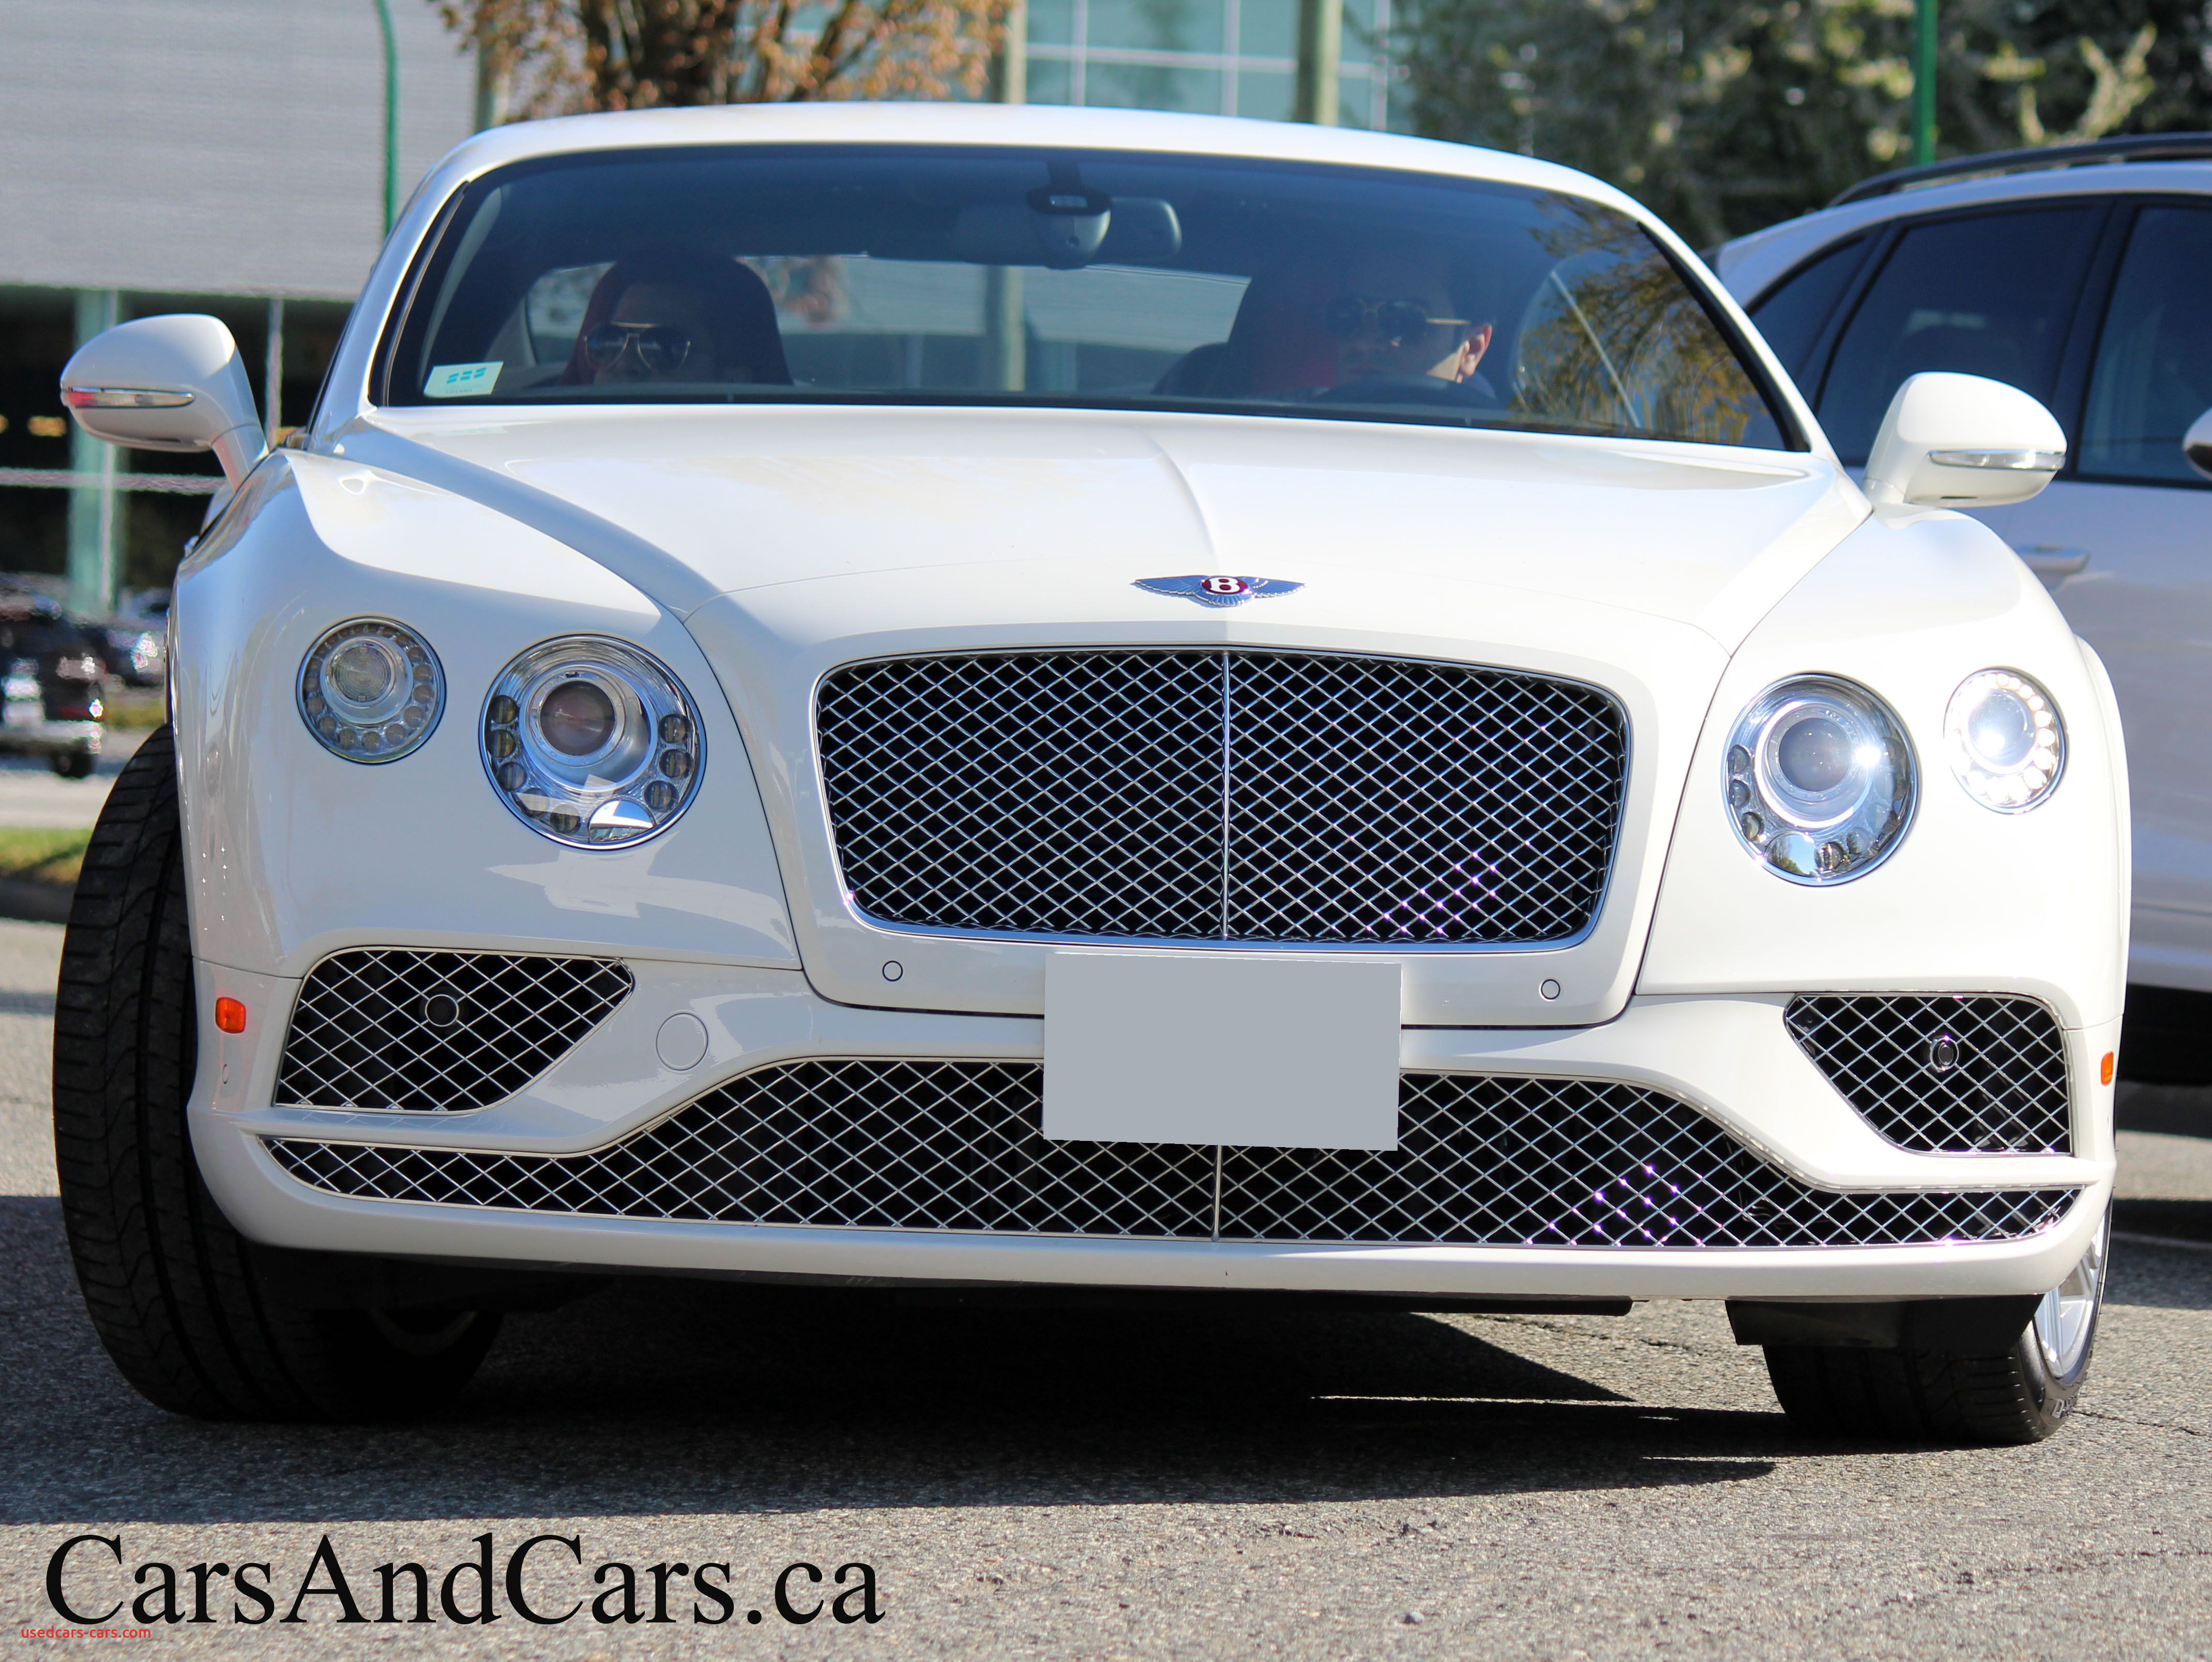 Used Cars for Sale Canada New Bentley Continental Gt Luxury